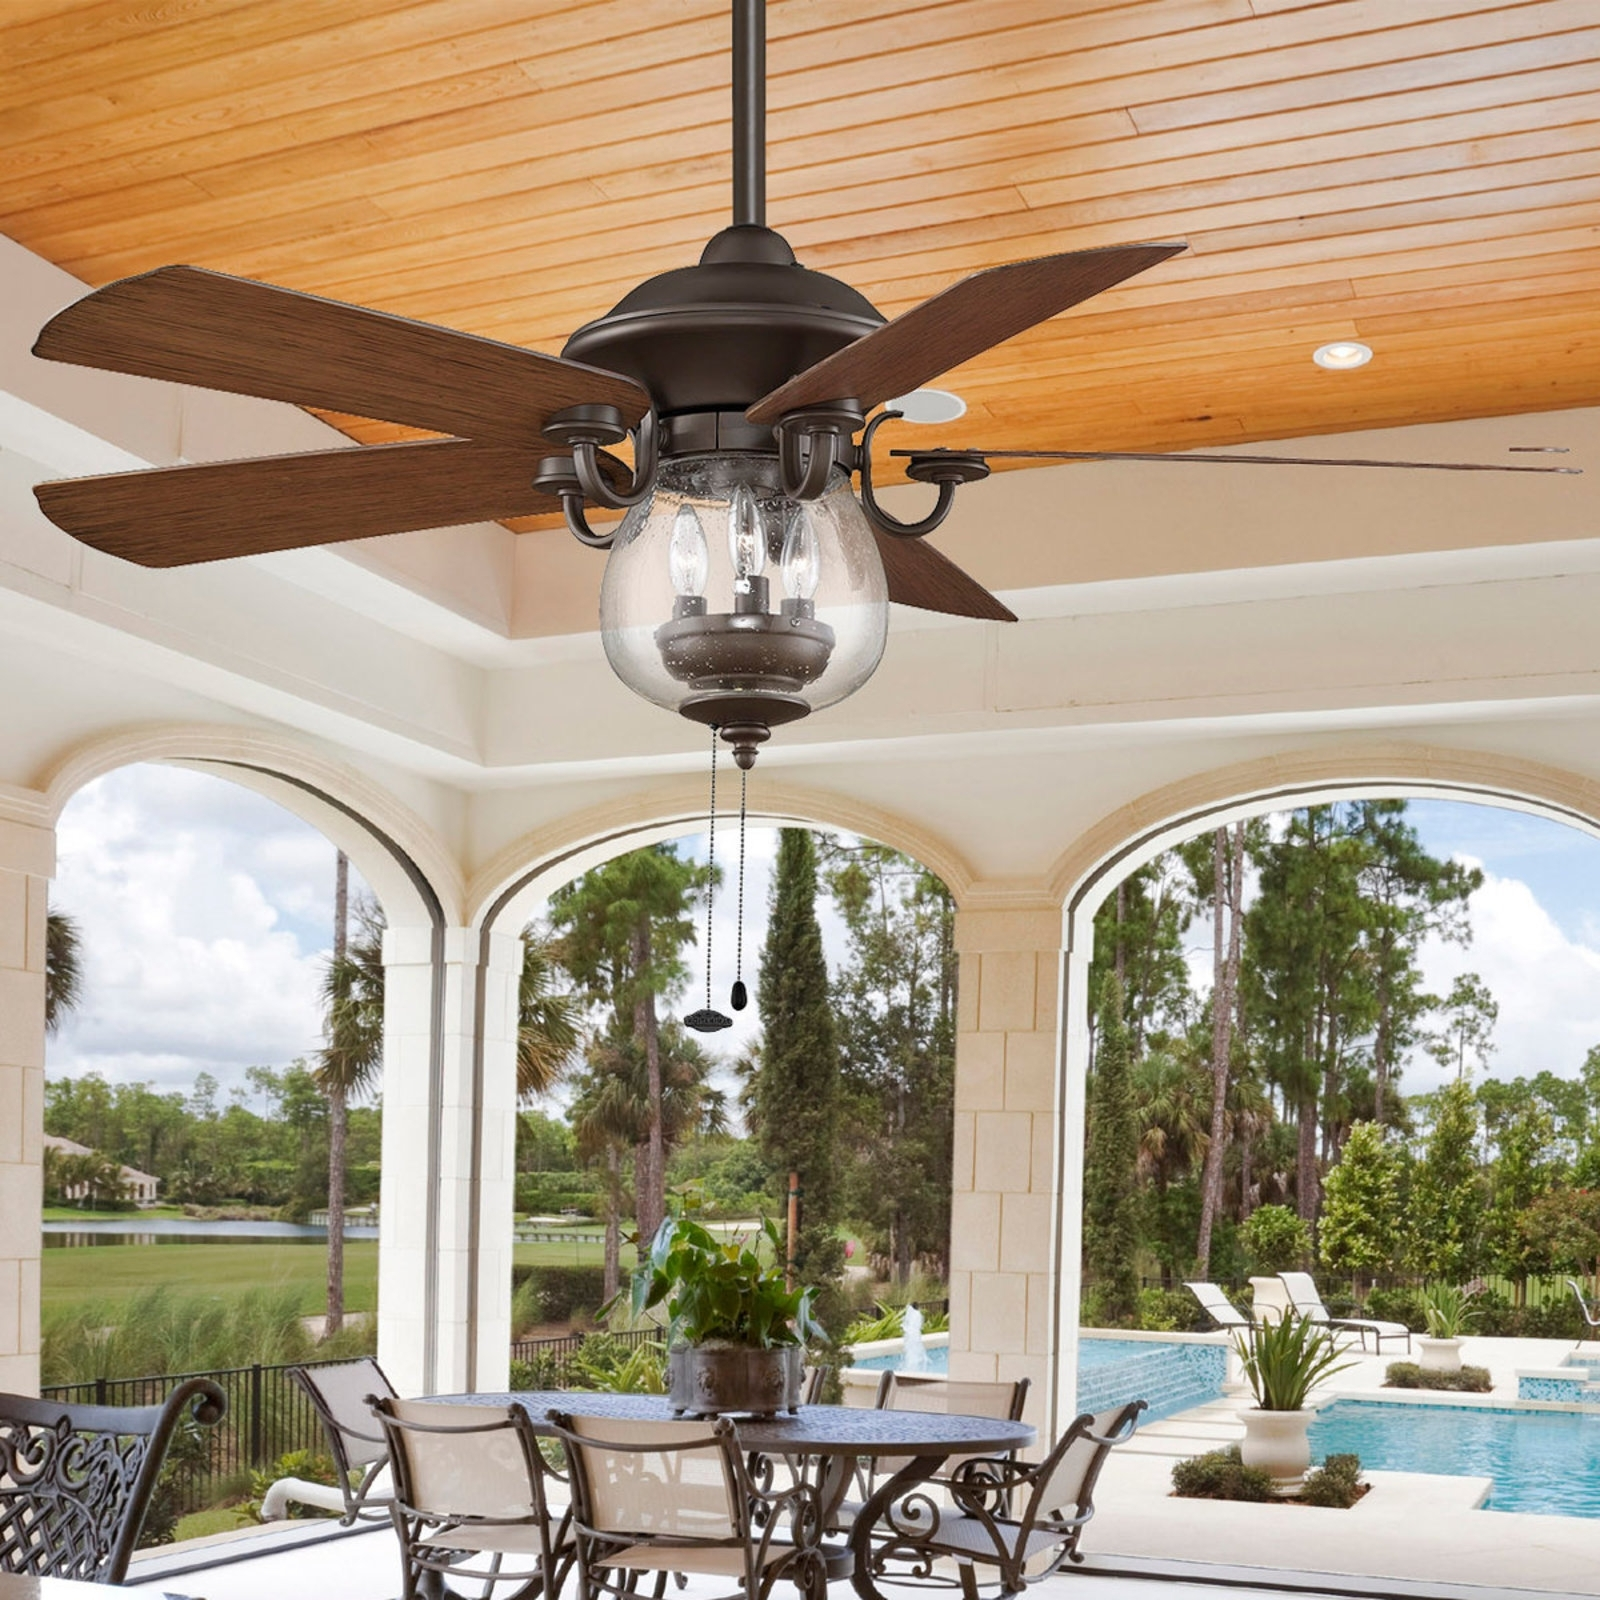 Most Current Outdoor Ceiling Fans – Design For Comfort With Outdoor Ceiling Fans With Motion Light (View 6 of 20)